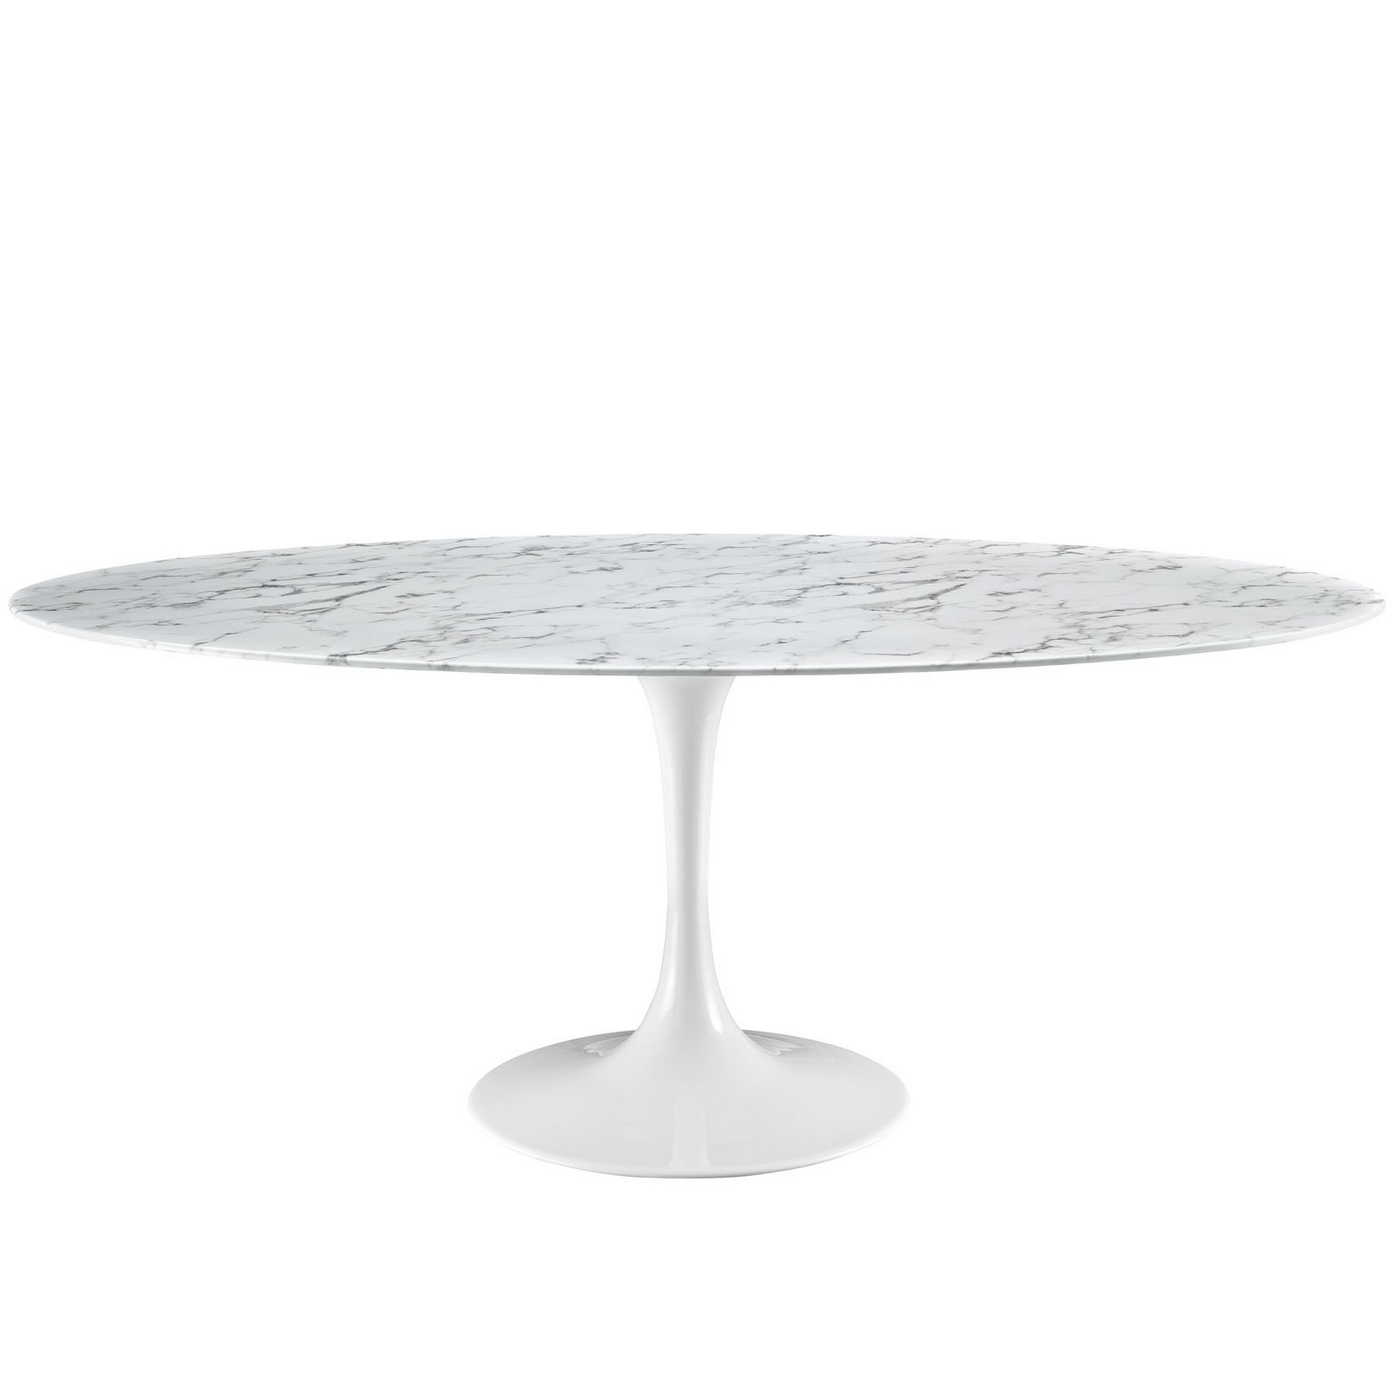 Lippa modern 78 faux marble dining table with lacquered finish white - White marble dining tables ...